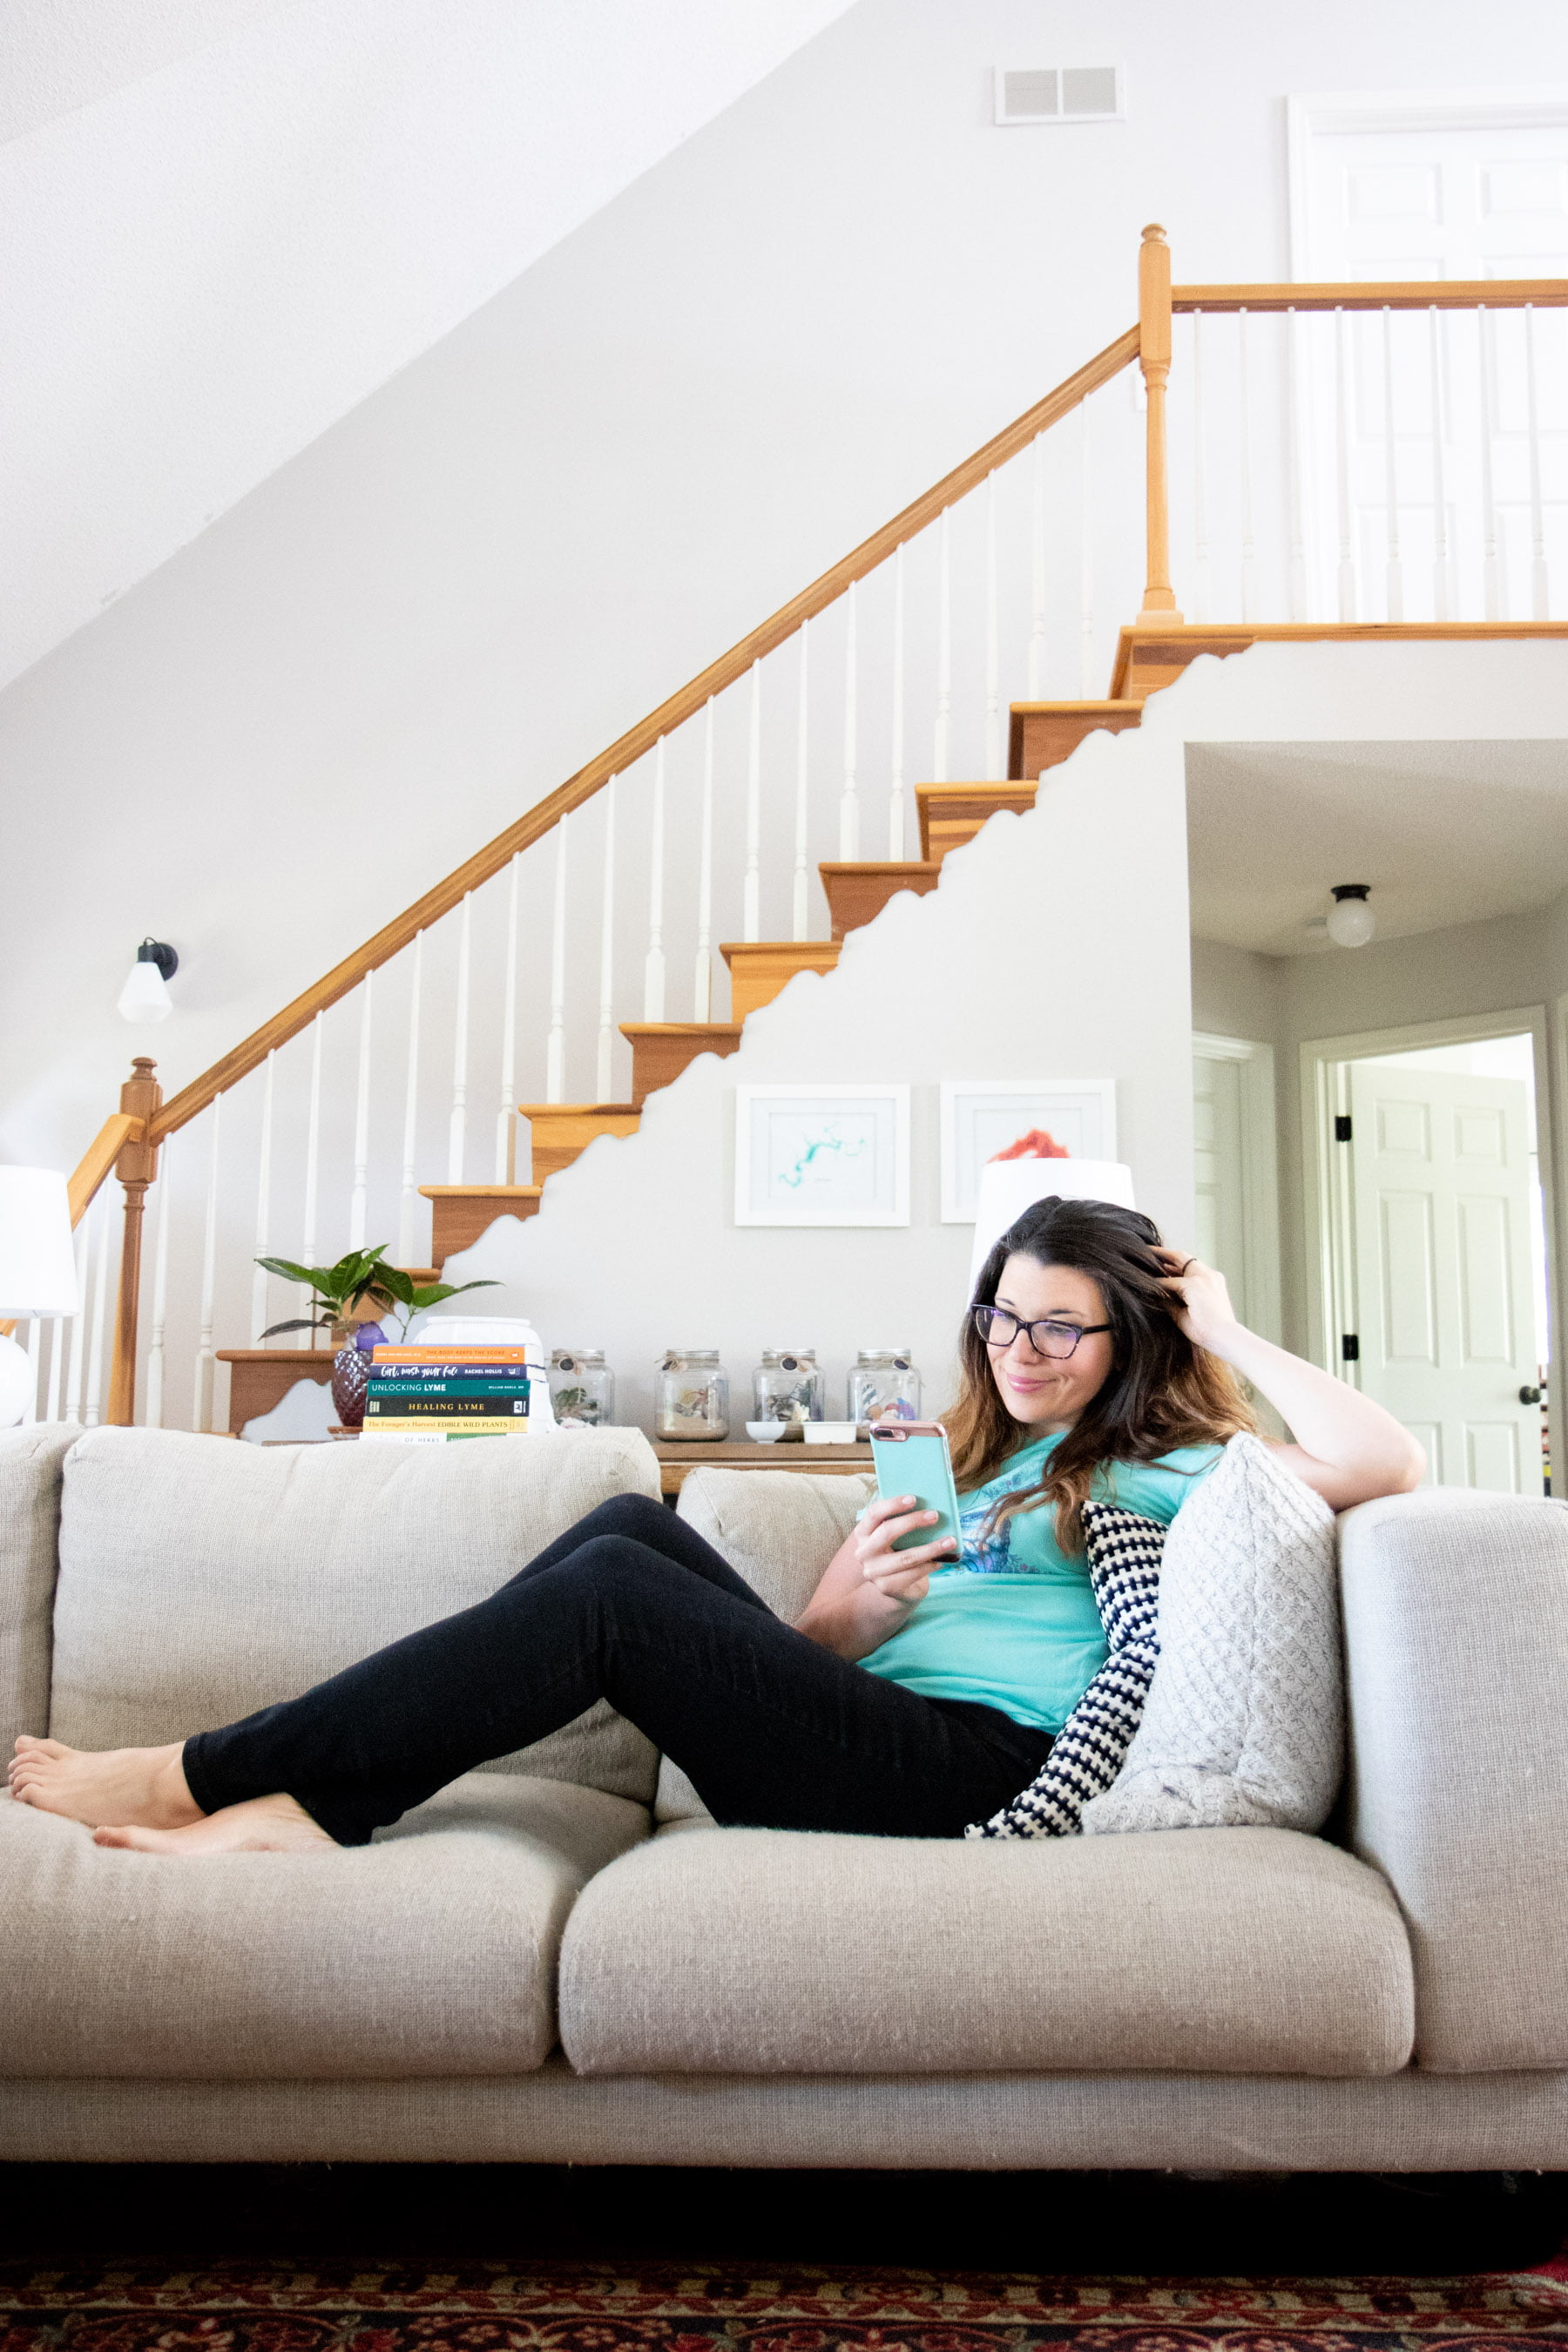 Woman lounging on an off-white couch looking at a phone to find a therapist